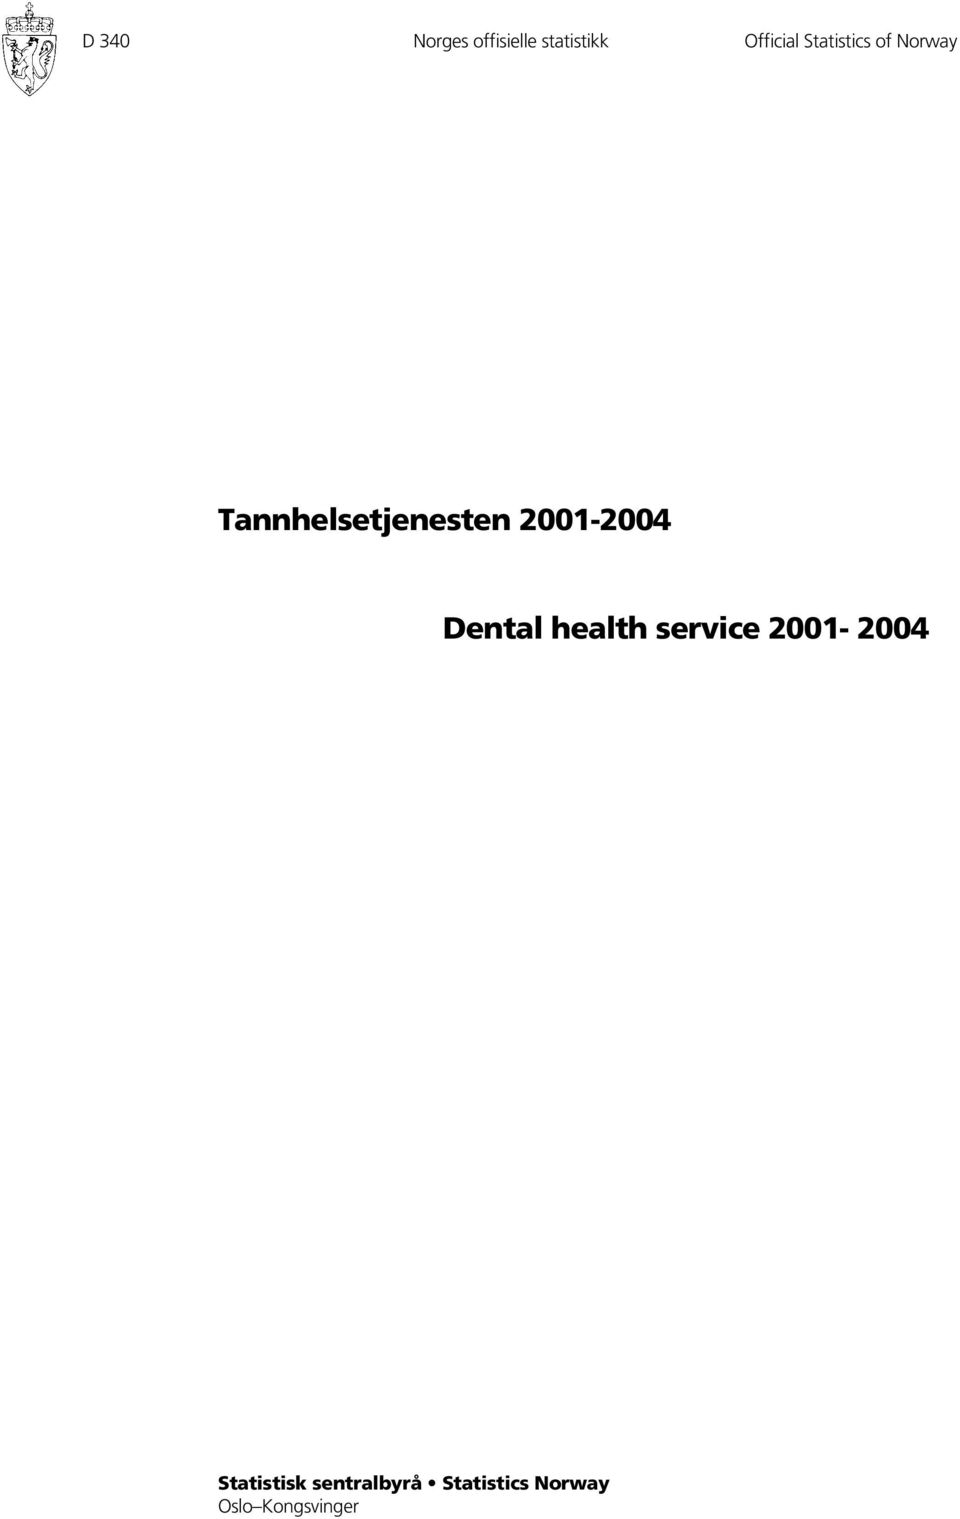 2001-2004 Dental health service 2001-2004